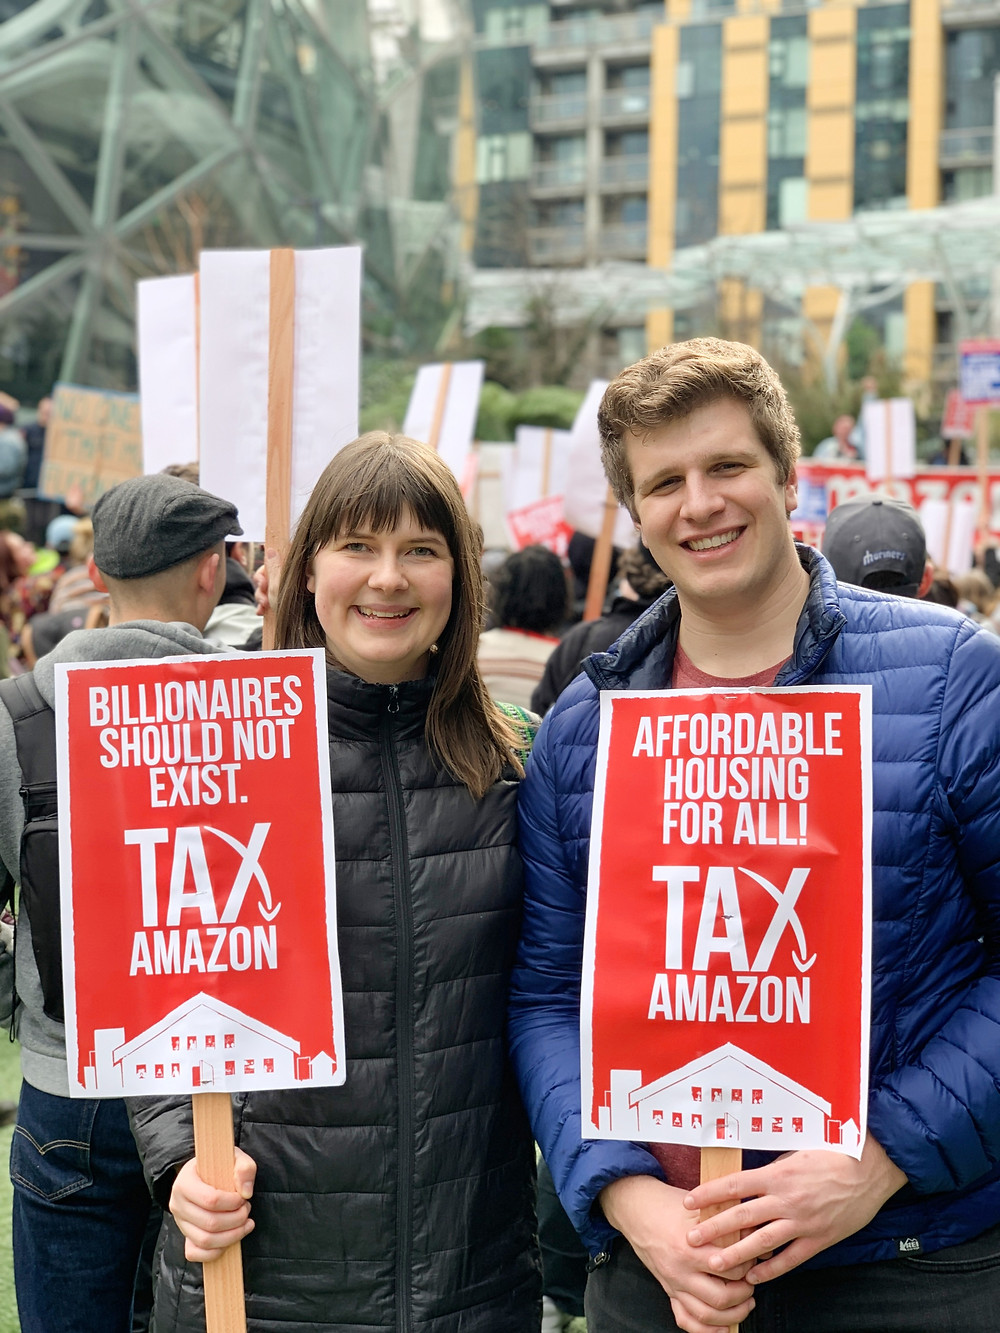 tax amazon protesters